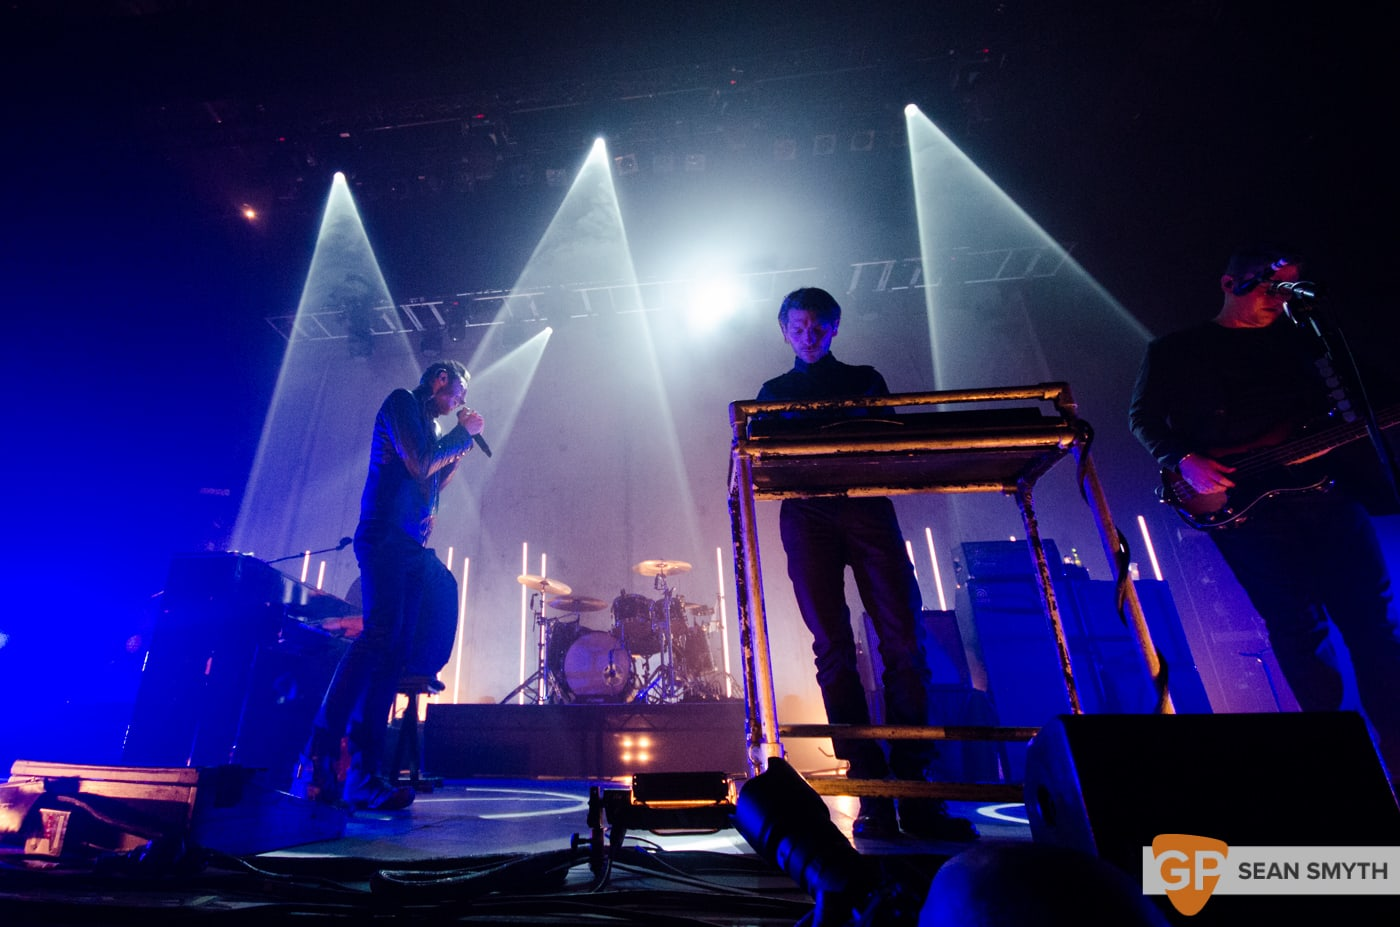 editors-at-the-olympia-theatre-by-sean-smyth-10-10-15-5-of-28_21467590064_o